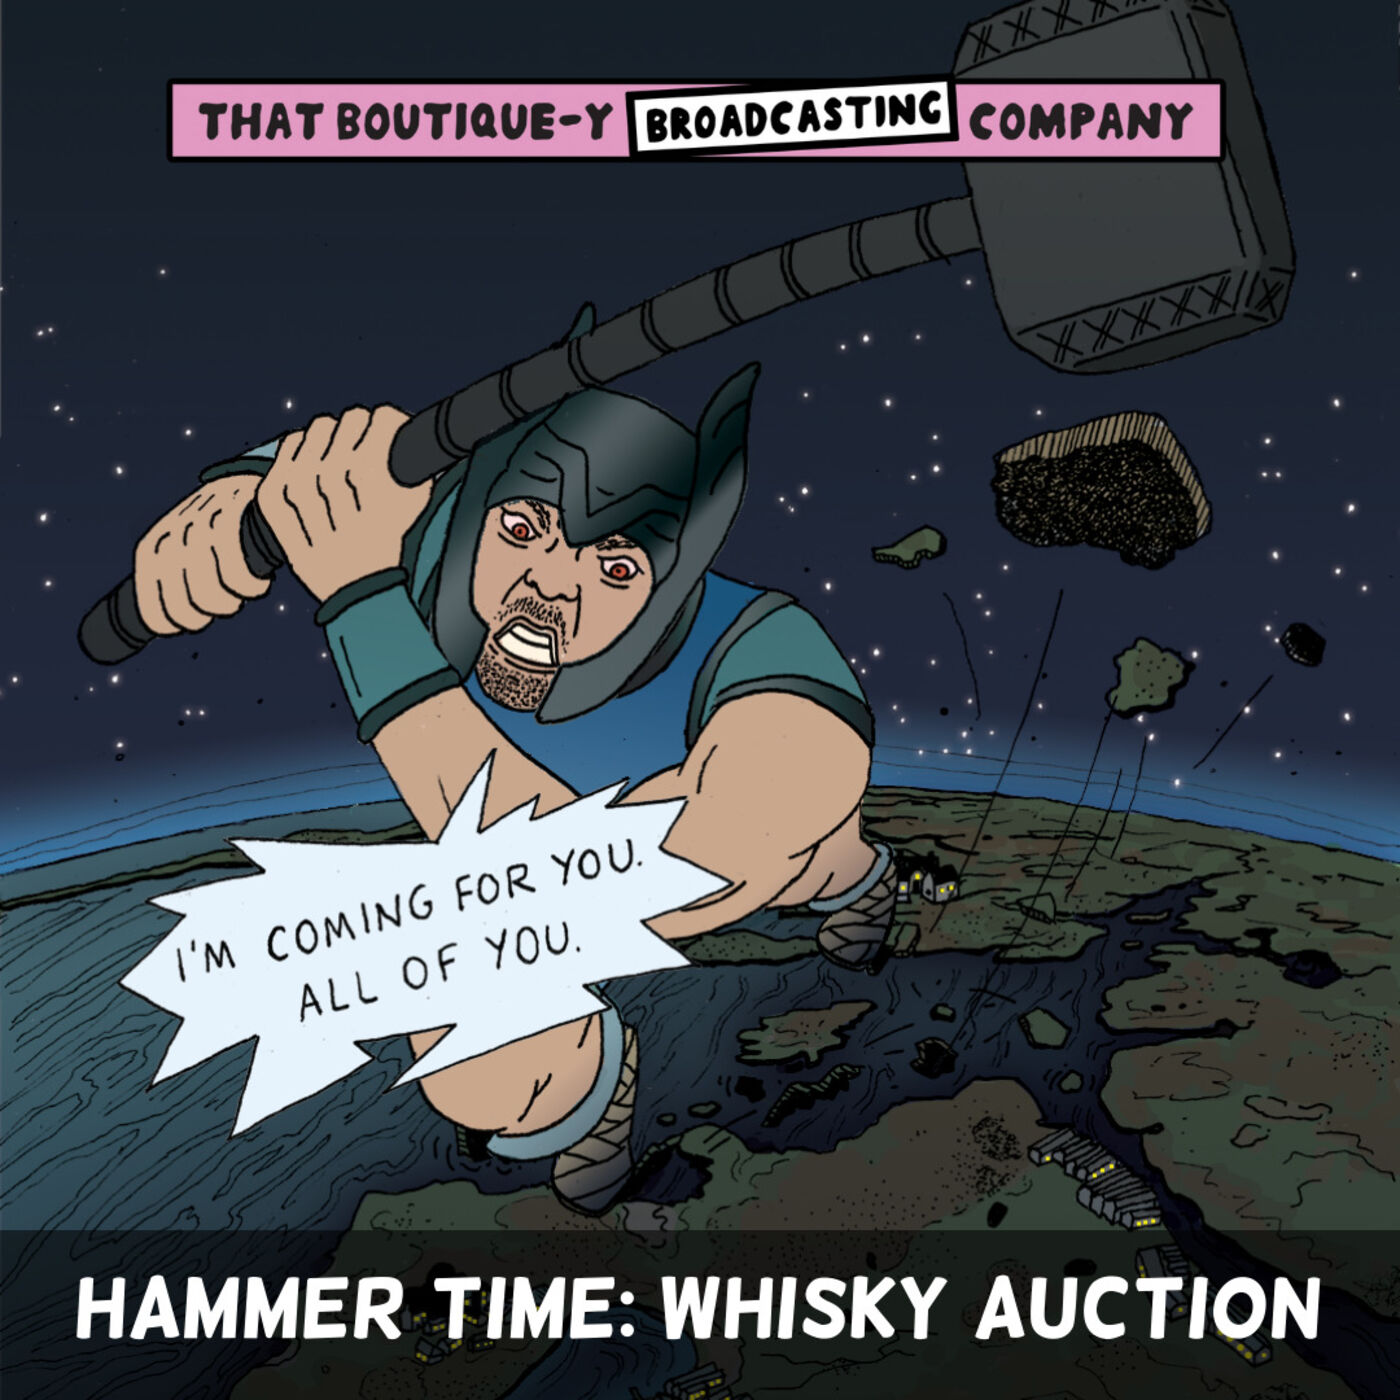 Batch 8: Hammer Time: Whisky Auction